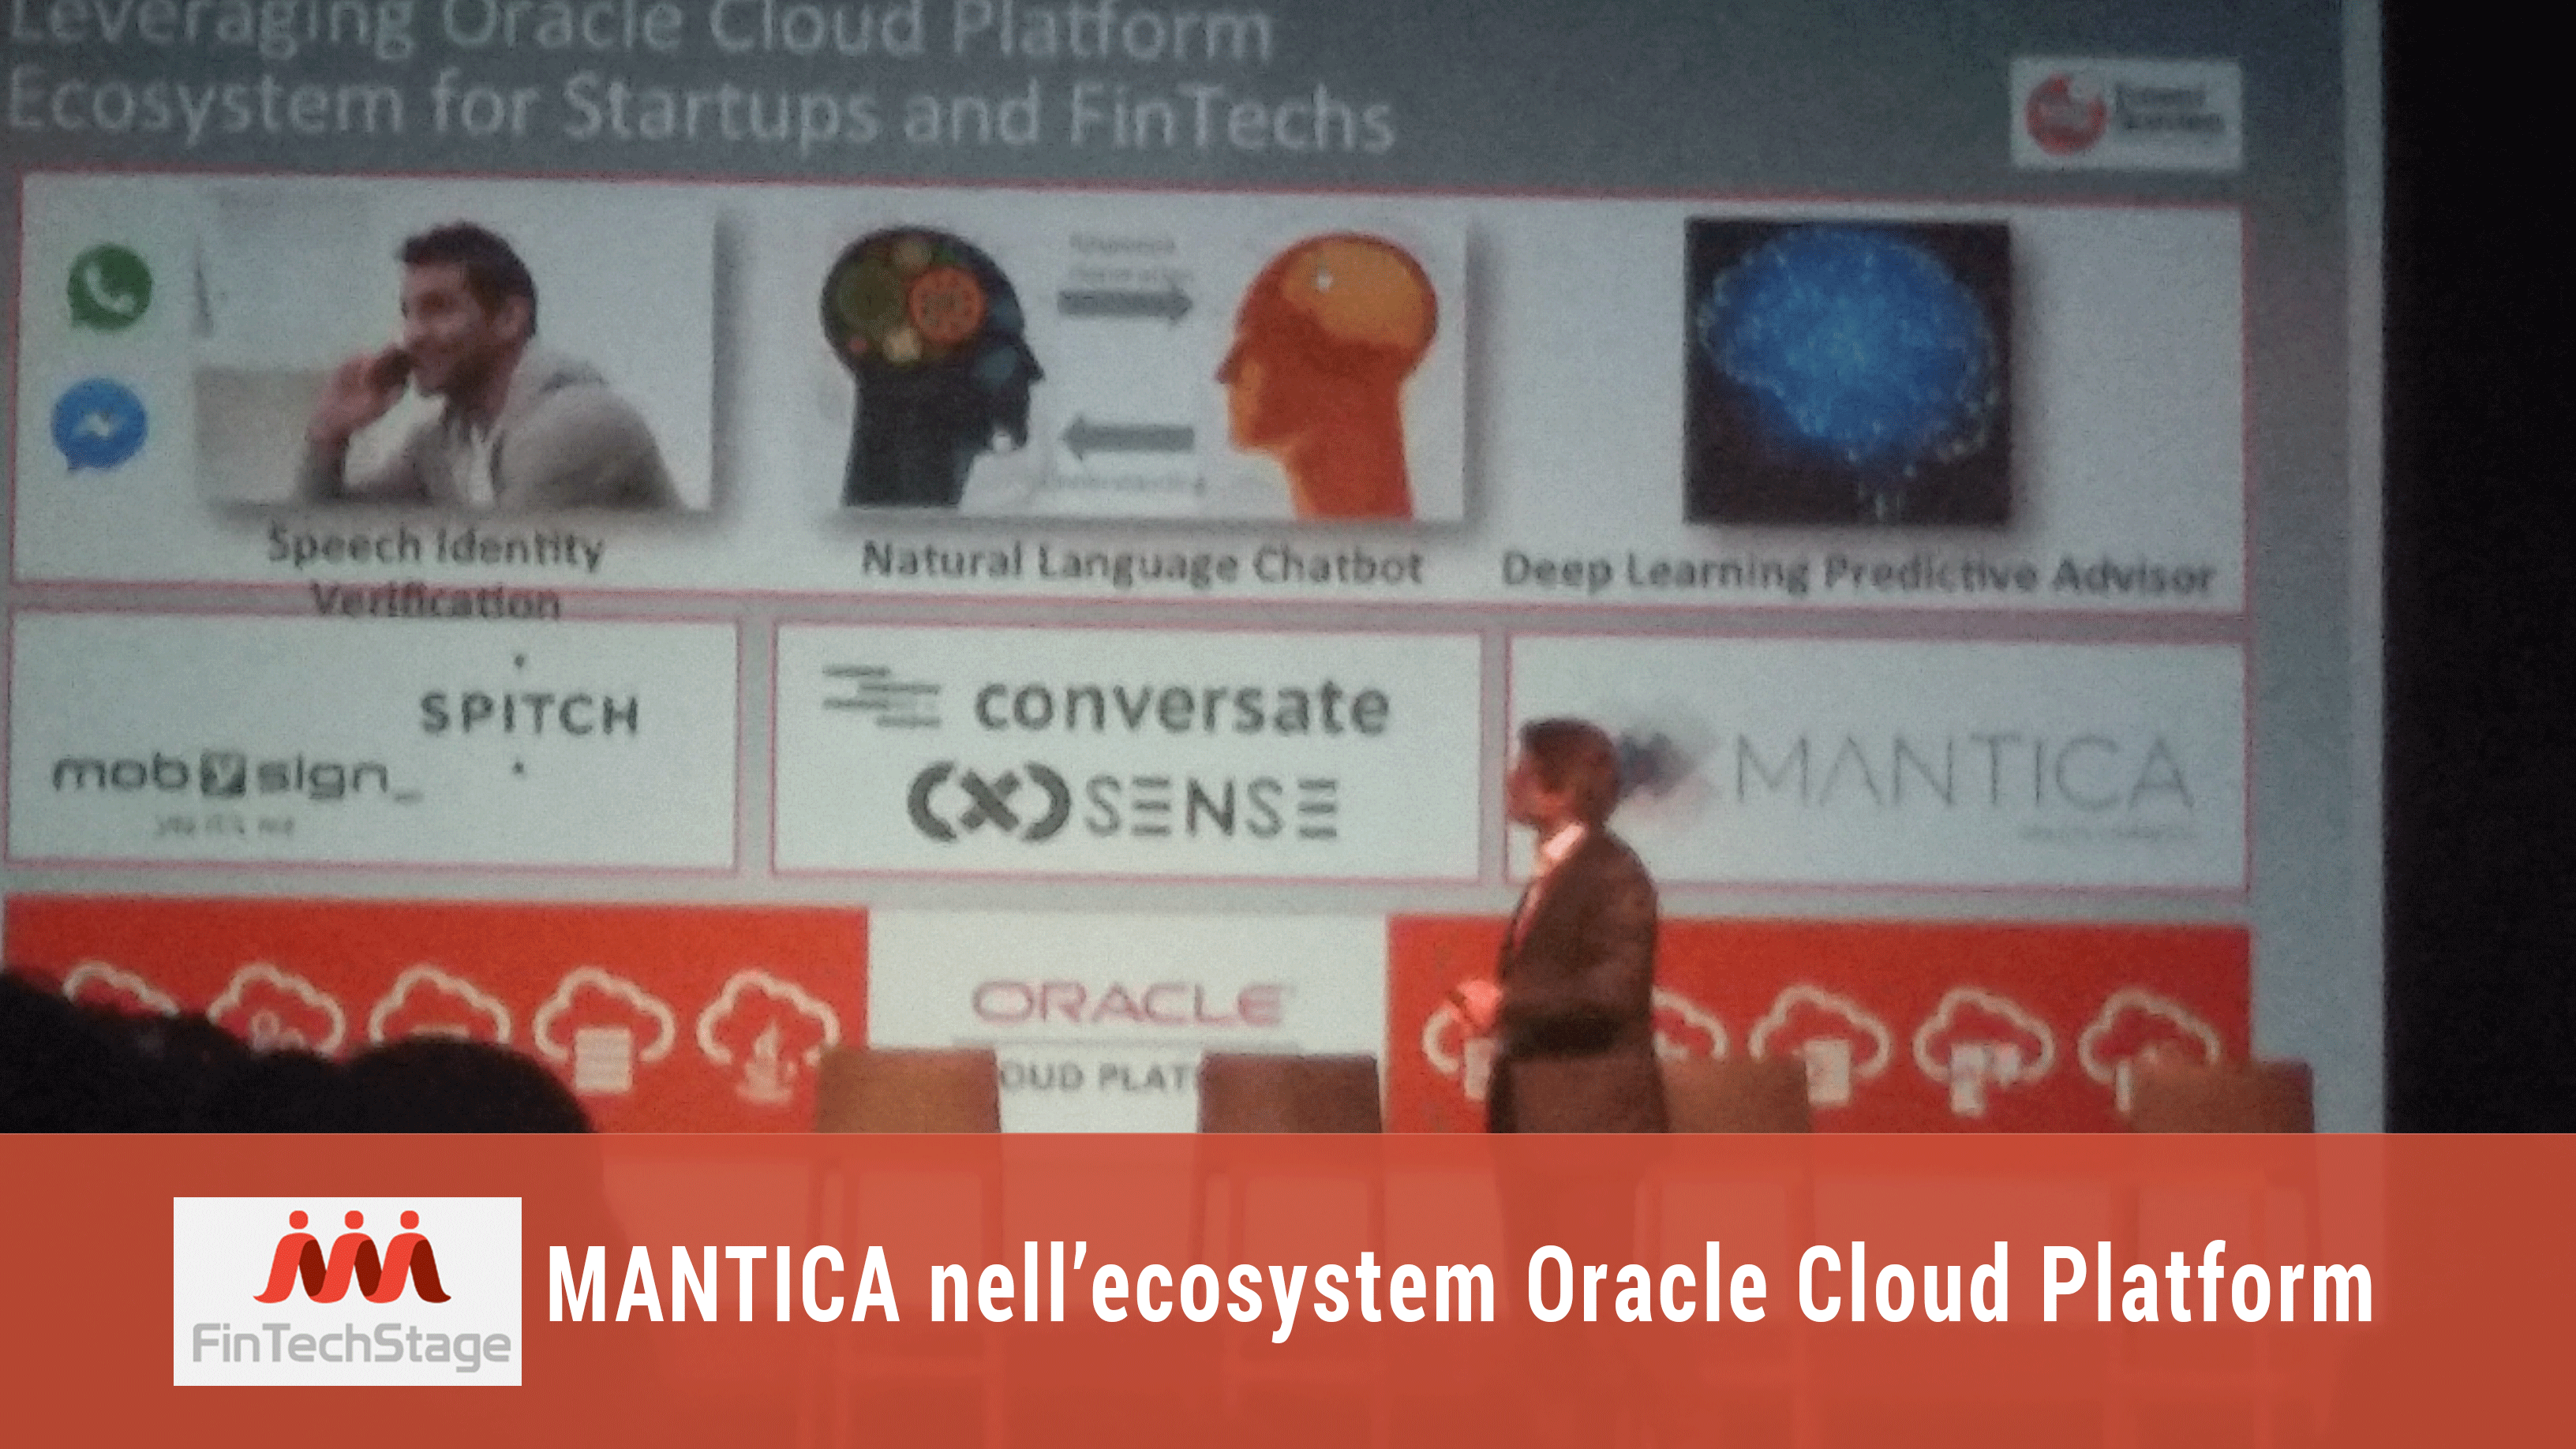 FinTech – Mantica nell'ecosystem Oracle Cloud Platform